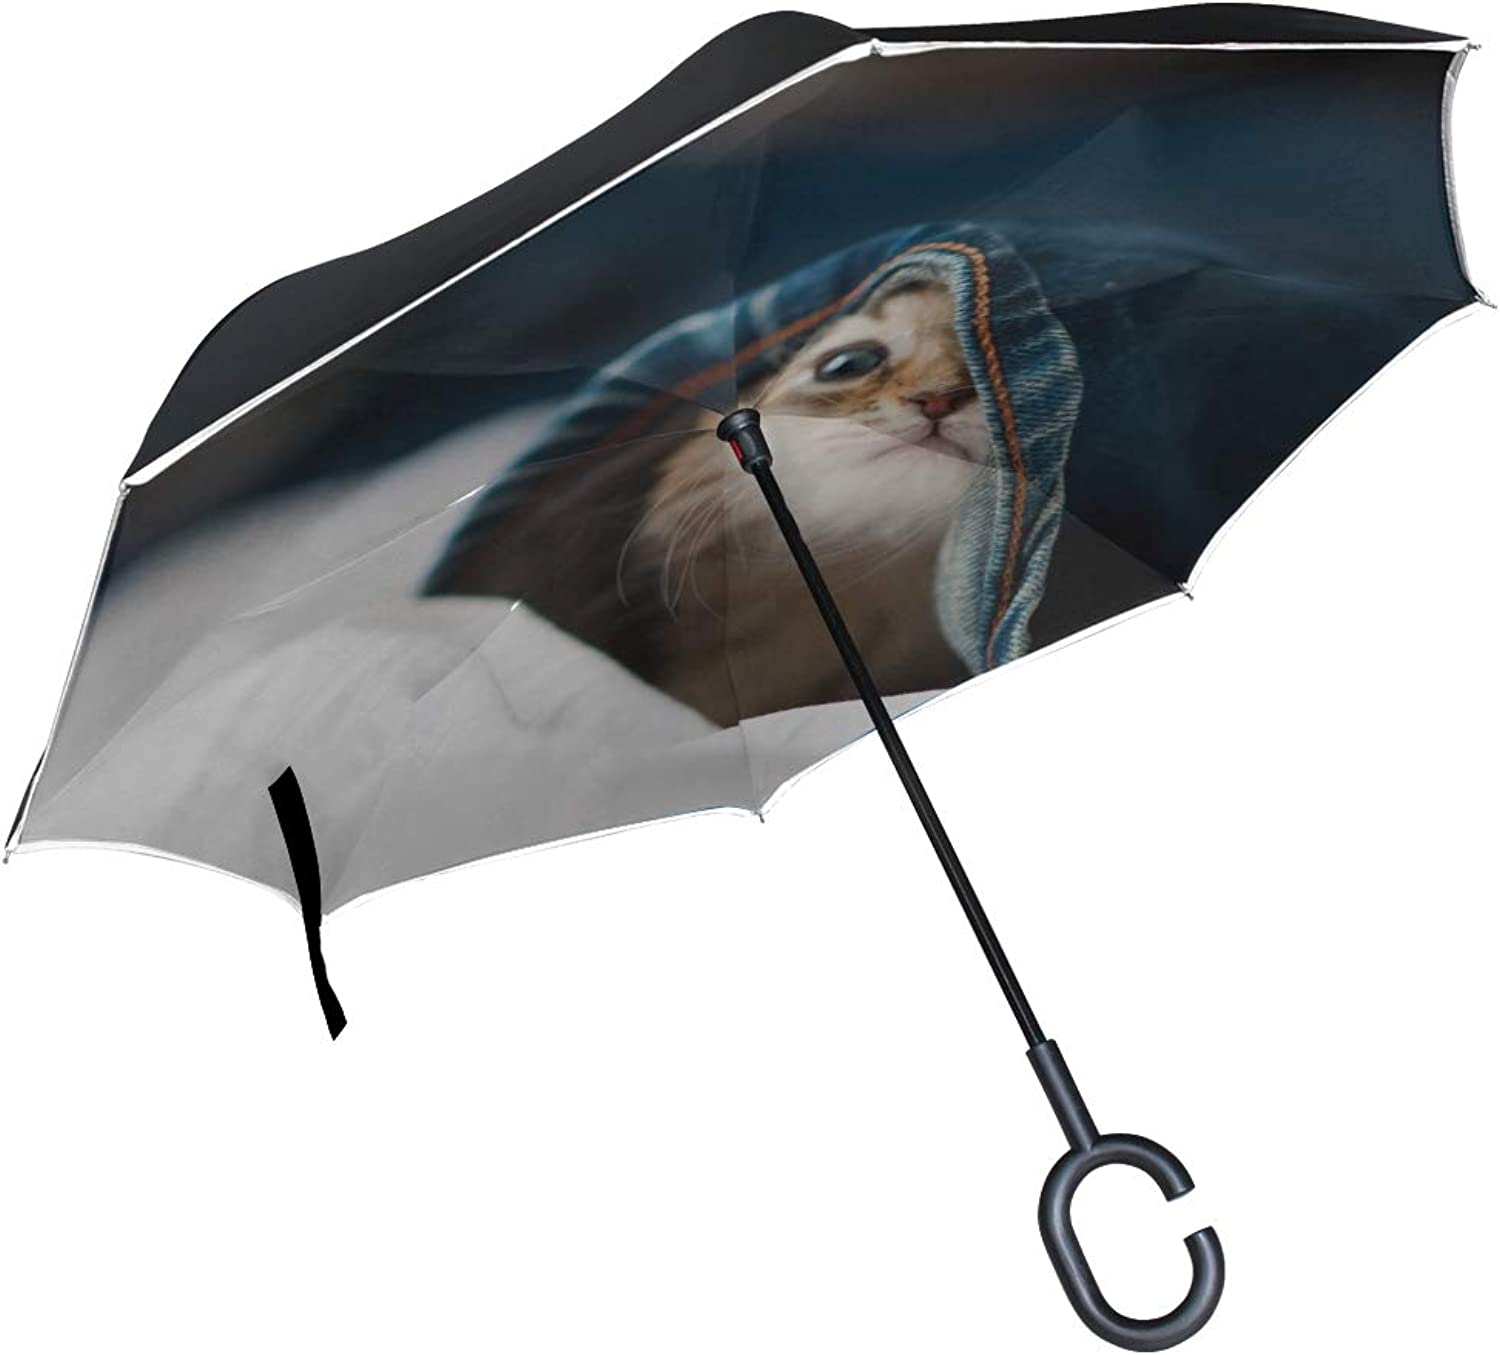 Rh Studio Ingreened Umbrella Kitten Face Jeans Playful Peek Large Double Layer Outdoor Rain Sun Car Reversible Umbrella